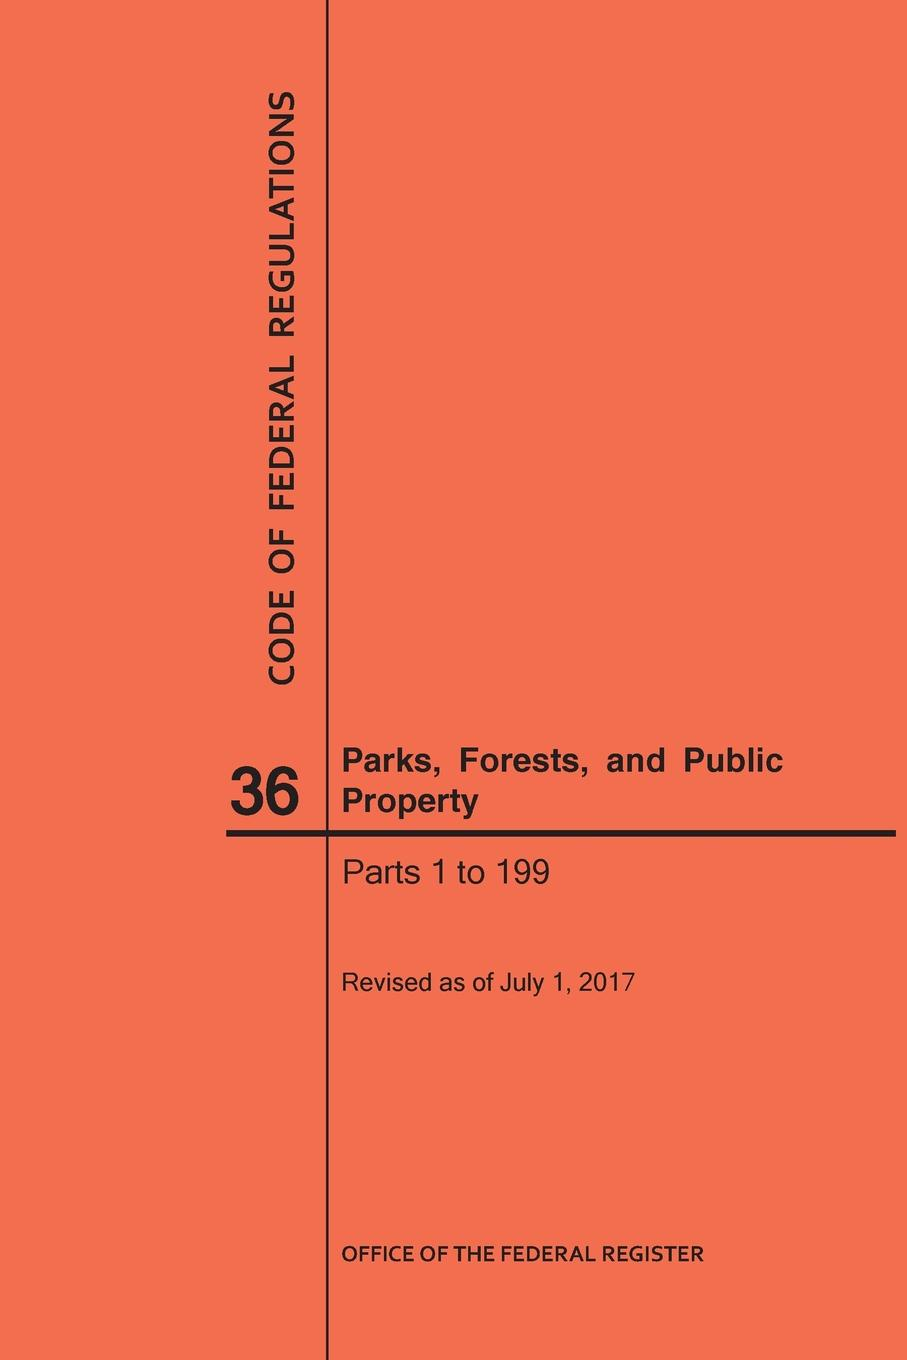 NARA Code of Federal Regulations Title 36, Parks, Forests and Public Property, Parts 1-199, 2017 parks and people